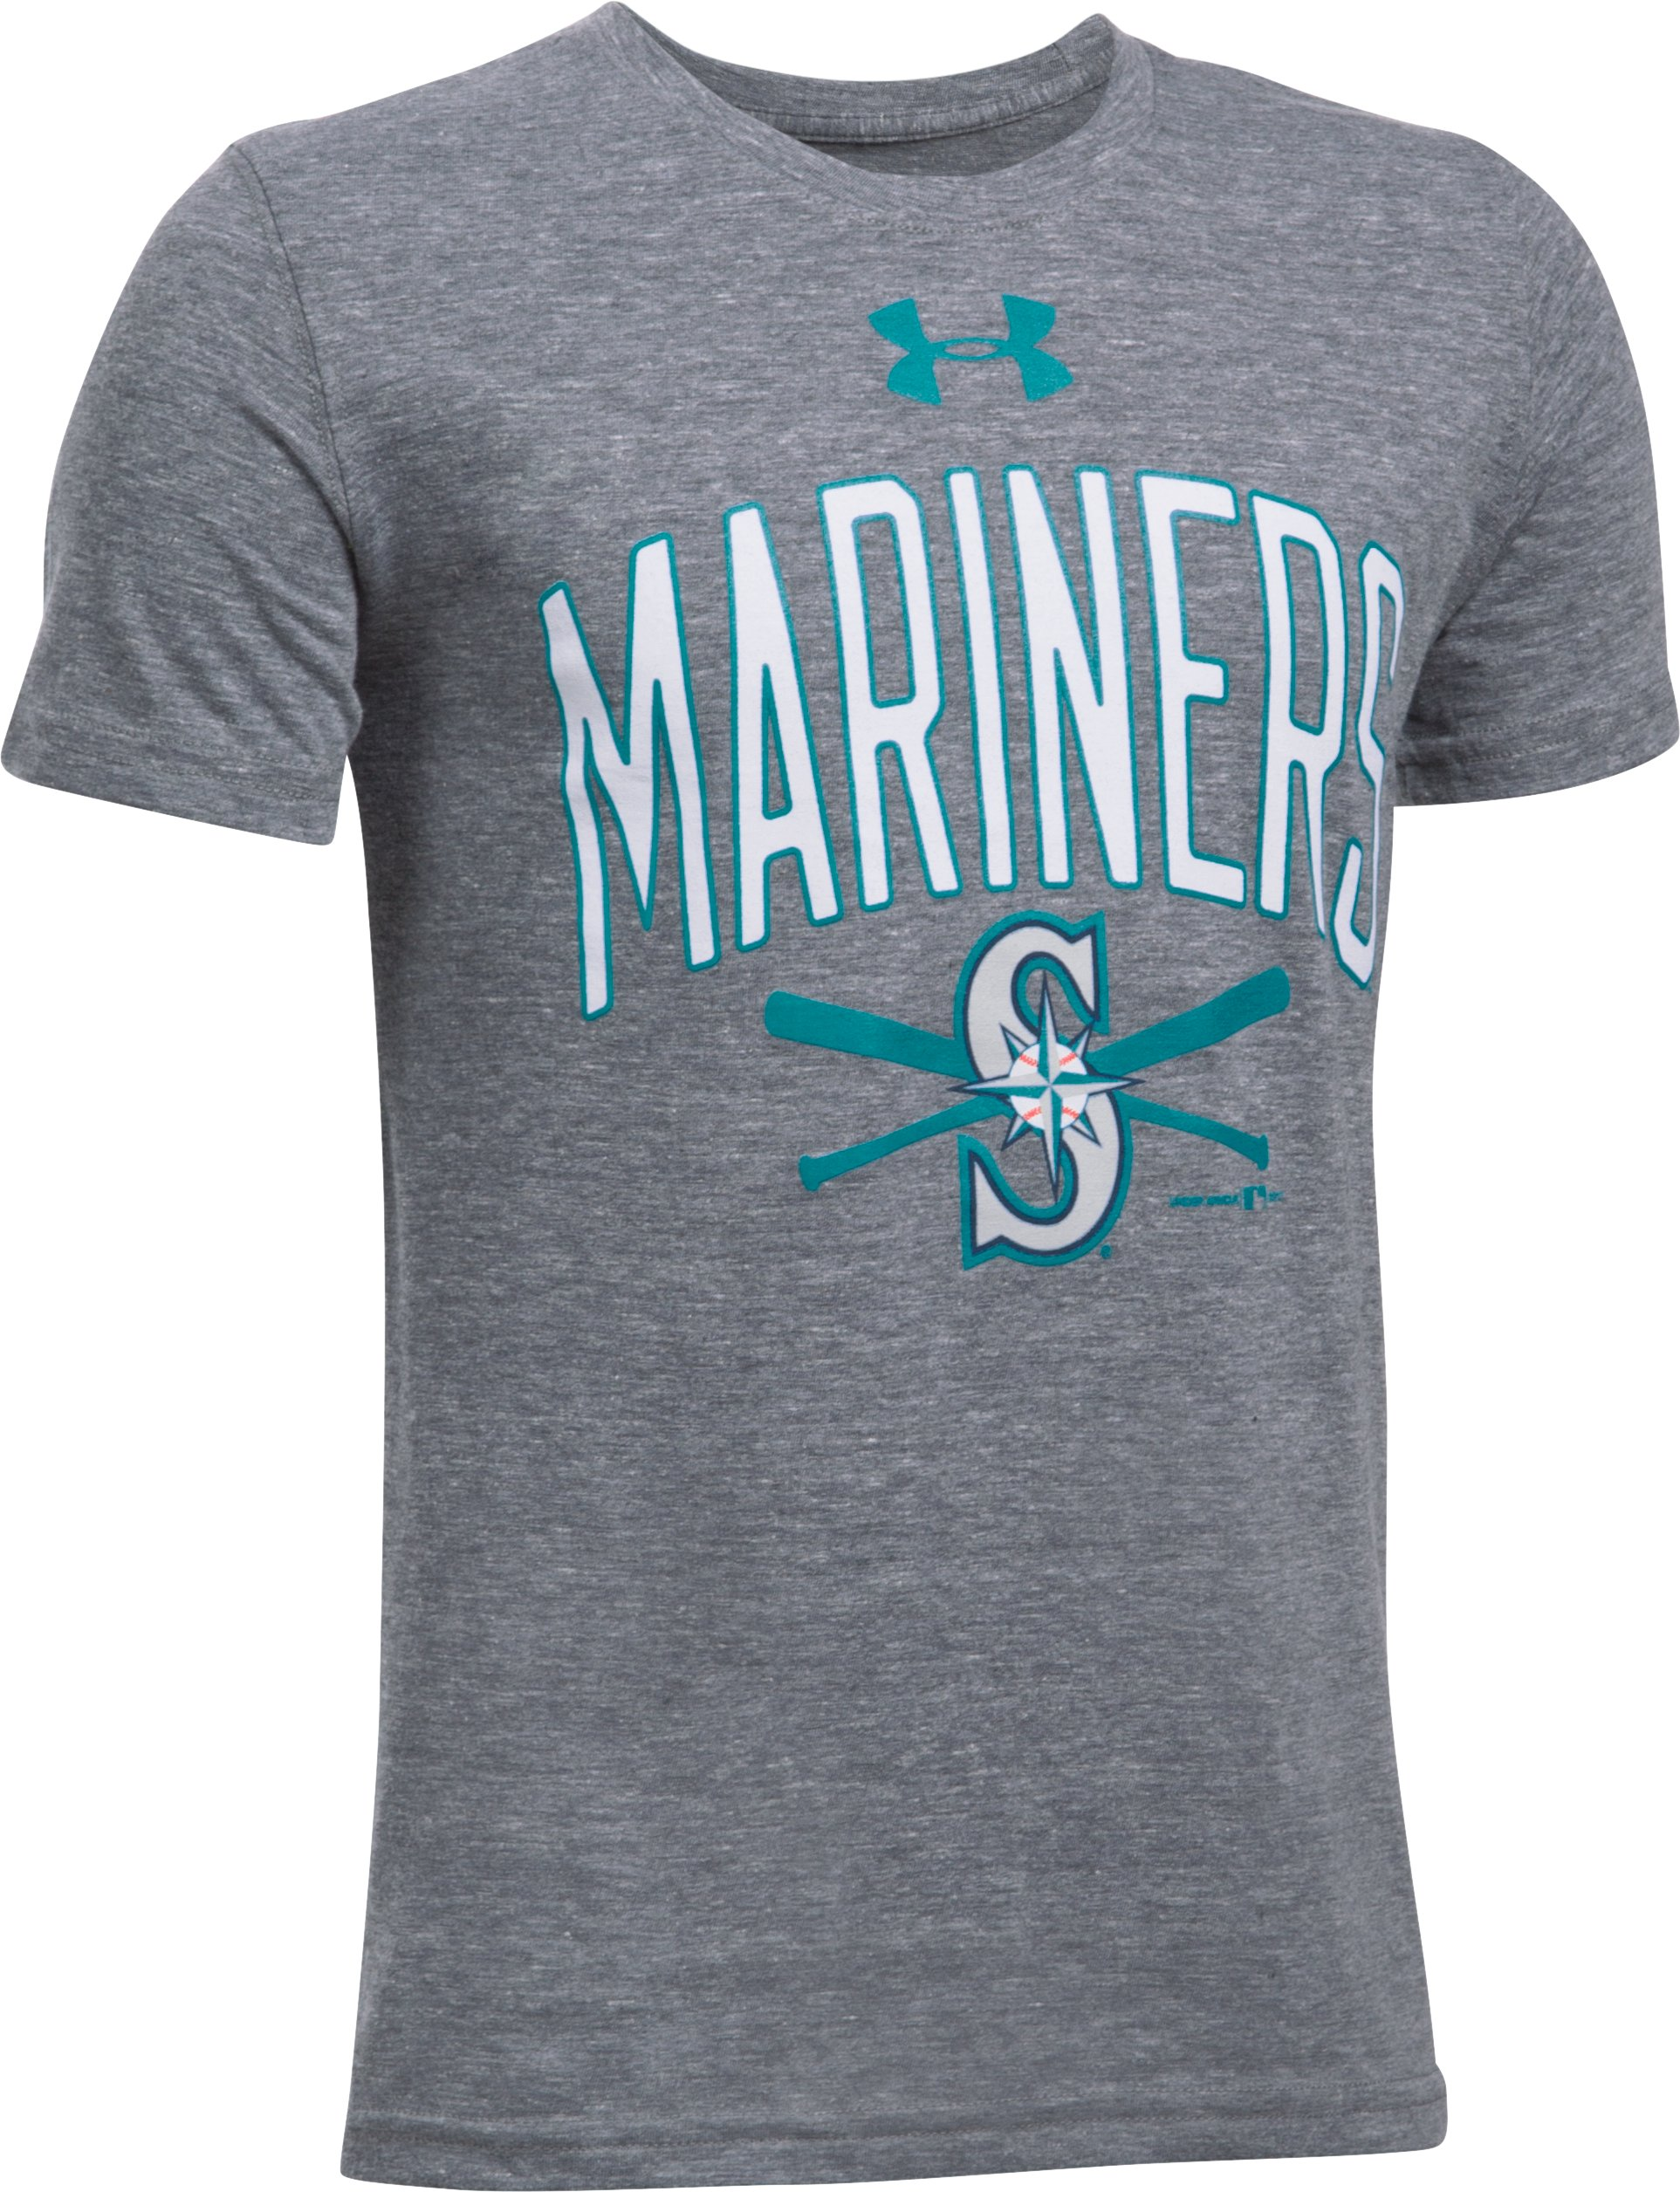 Boys' Seattle Mariners Tri-Blend T-Shirt, True Gray Heather,